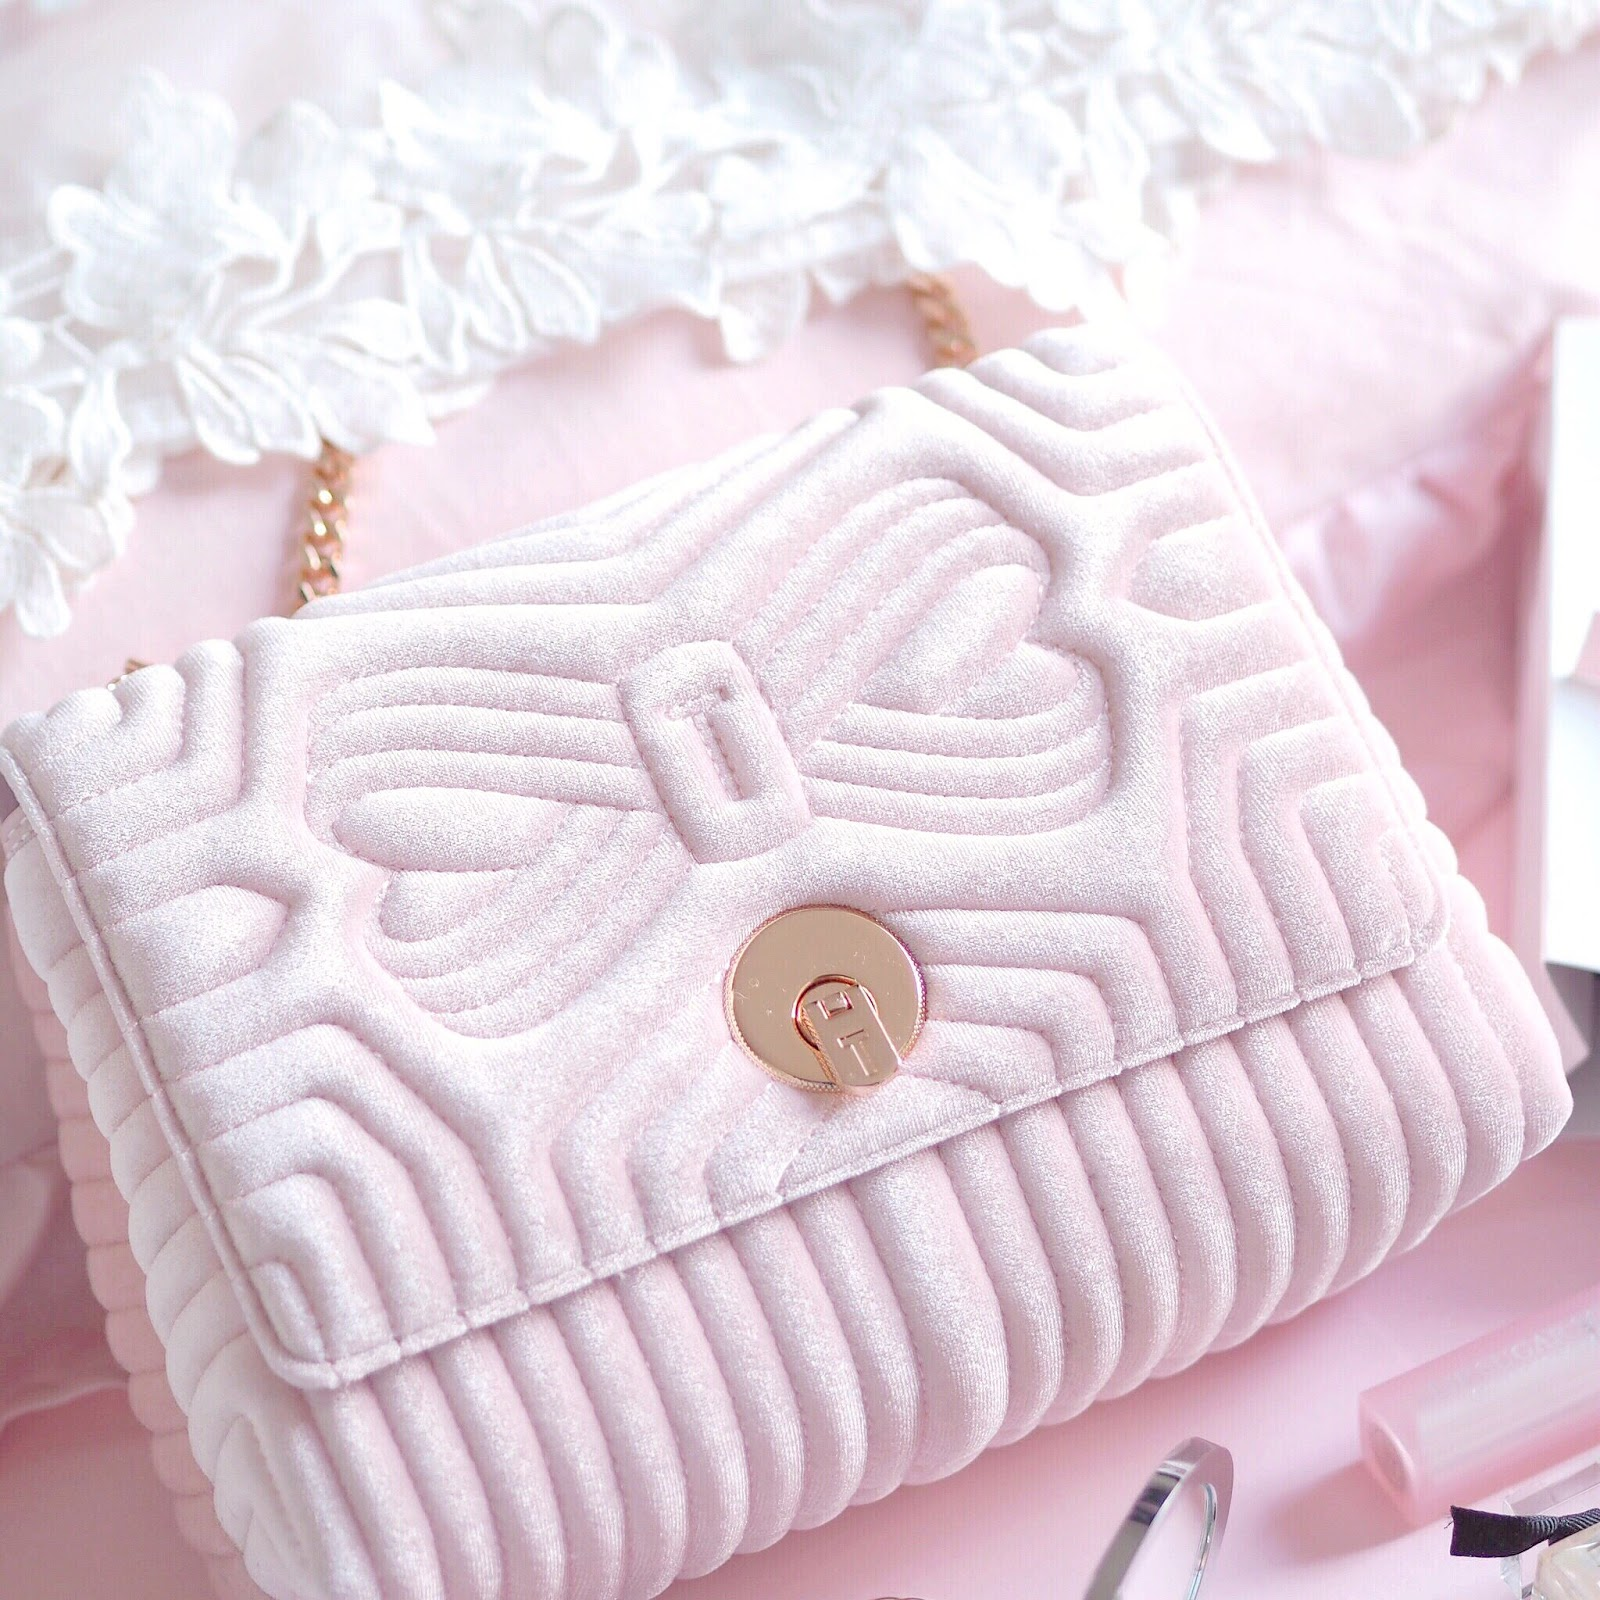 Ted Baker Pink Quilted Velvet Bag | What I Got Treated To On Christmas Day